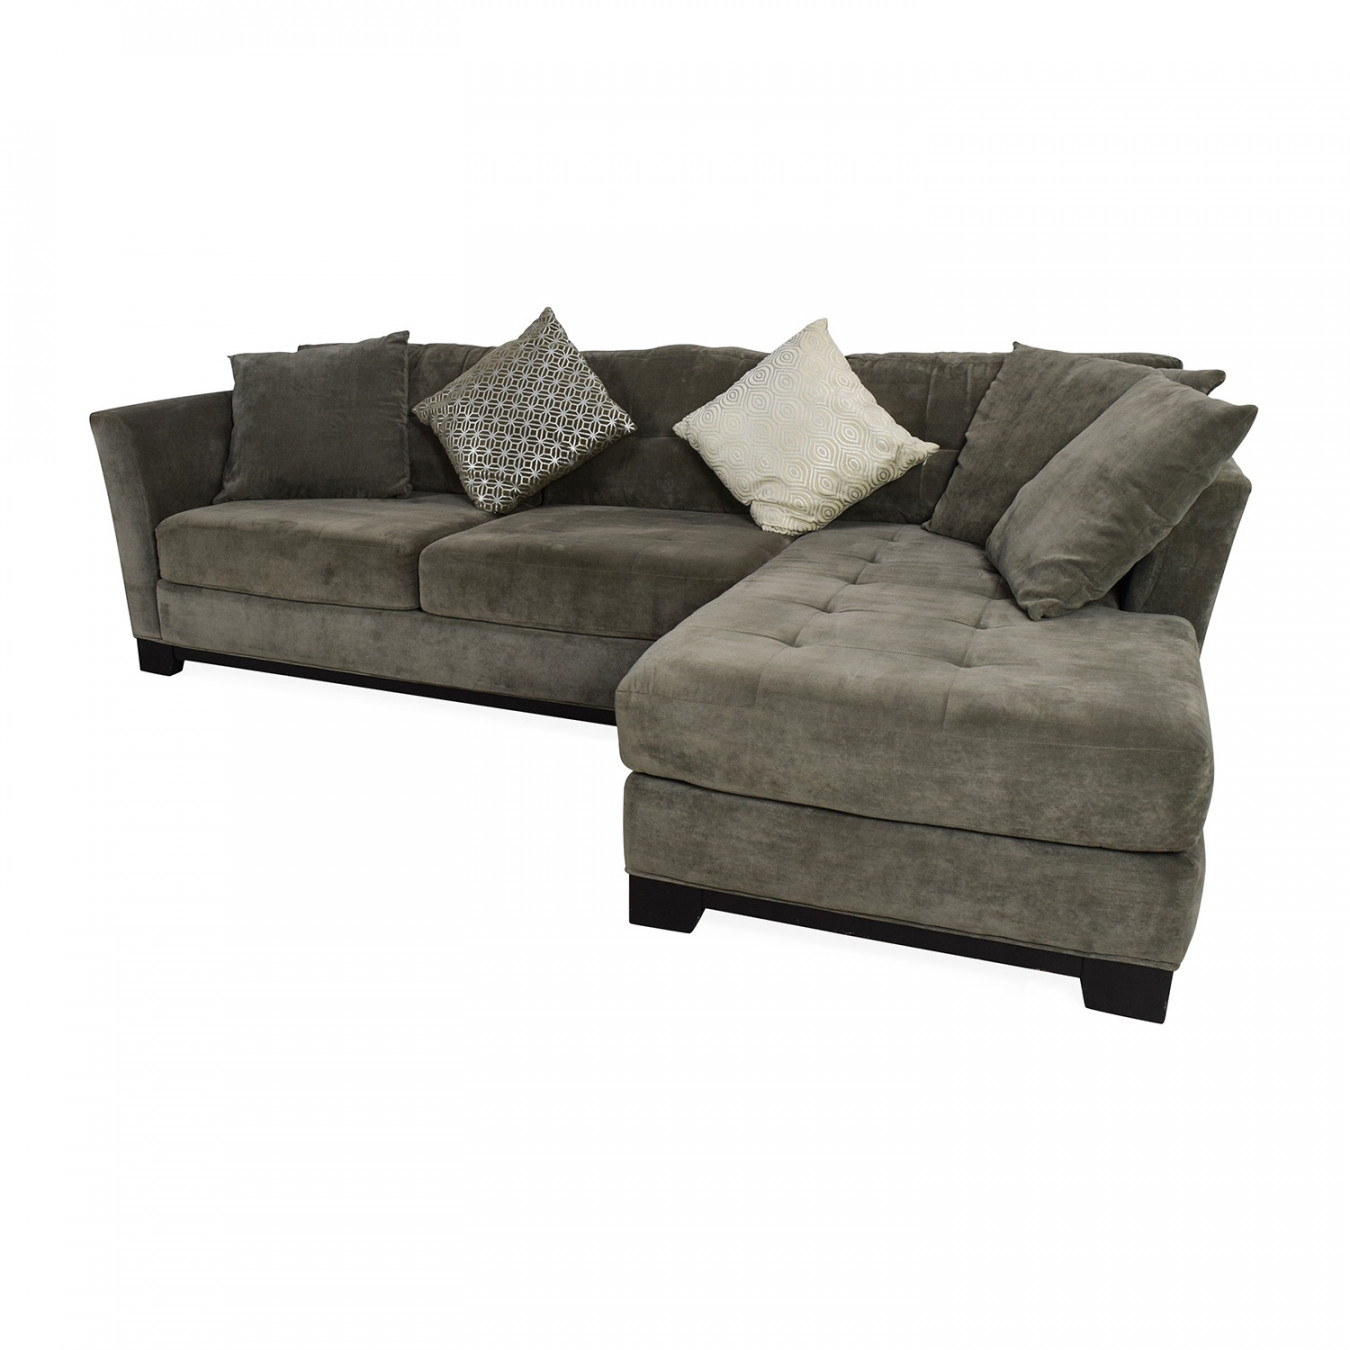 Sofas: Oversized Sectional With Chaise | Macys Sectional Sofa | Home Inside Macys Sectional Sofas (Image 9 of 10)